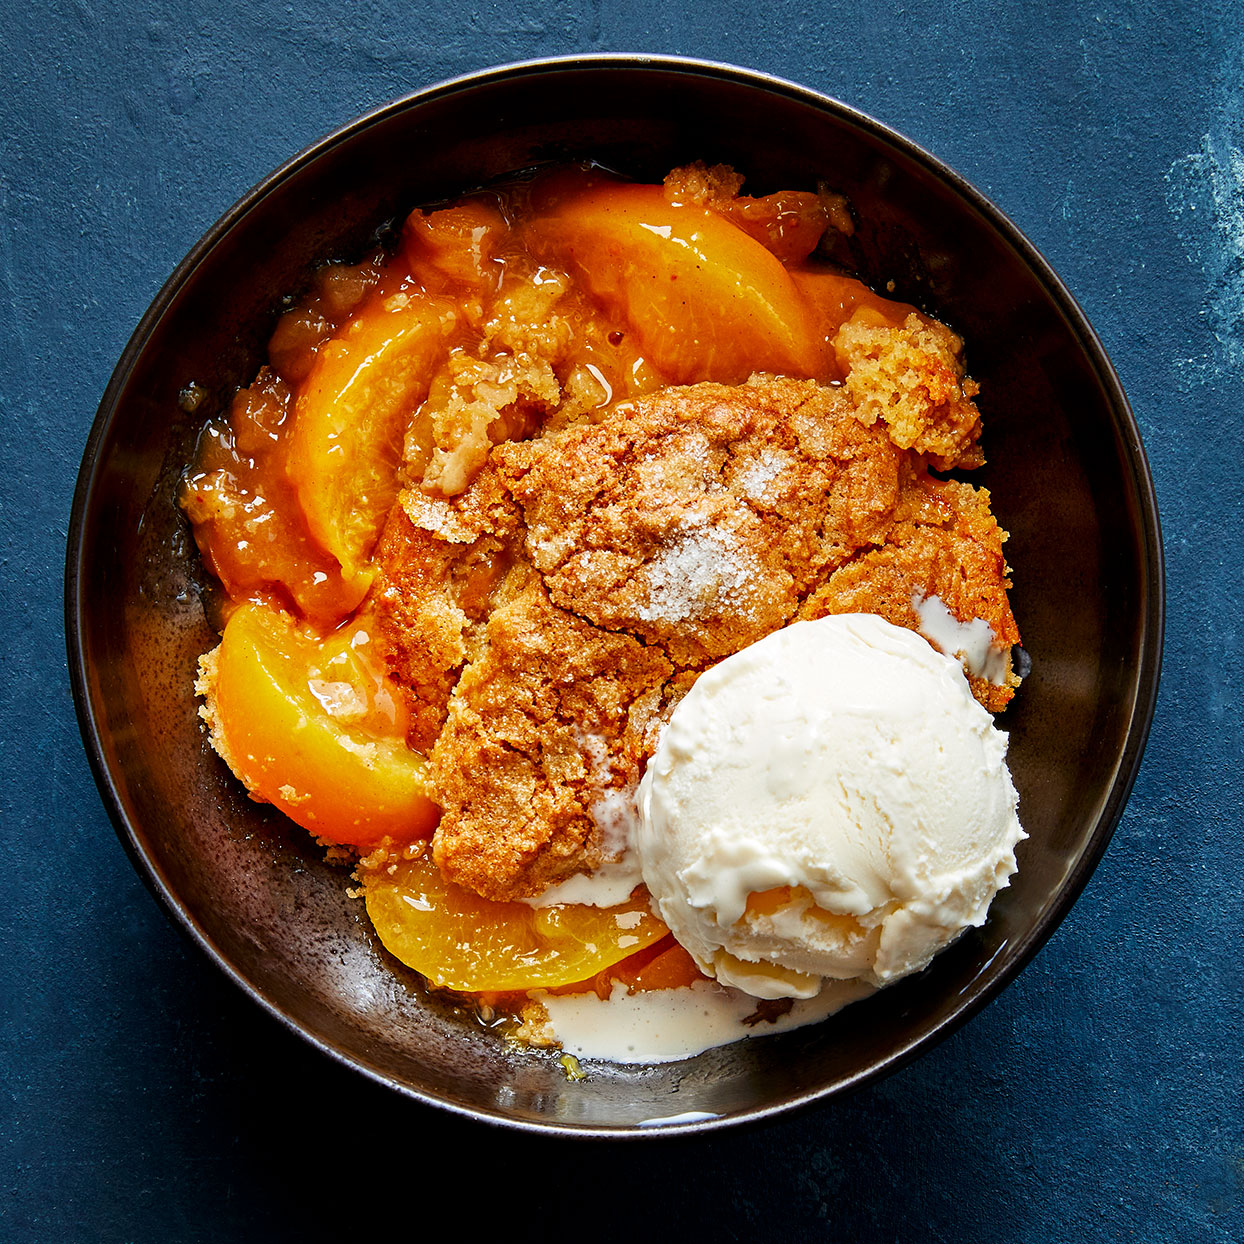 Crock-Pot Peach Cobbler